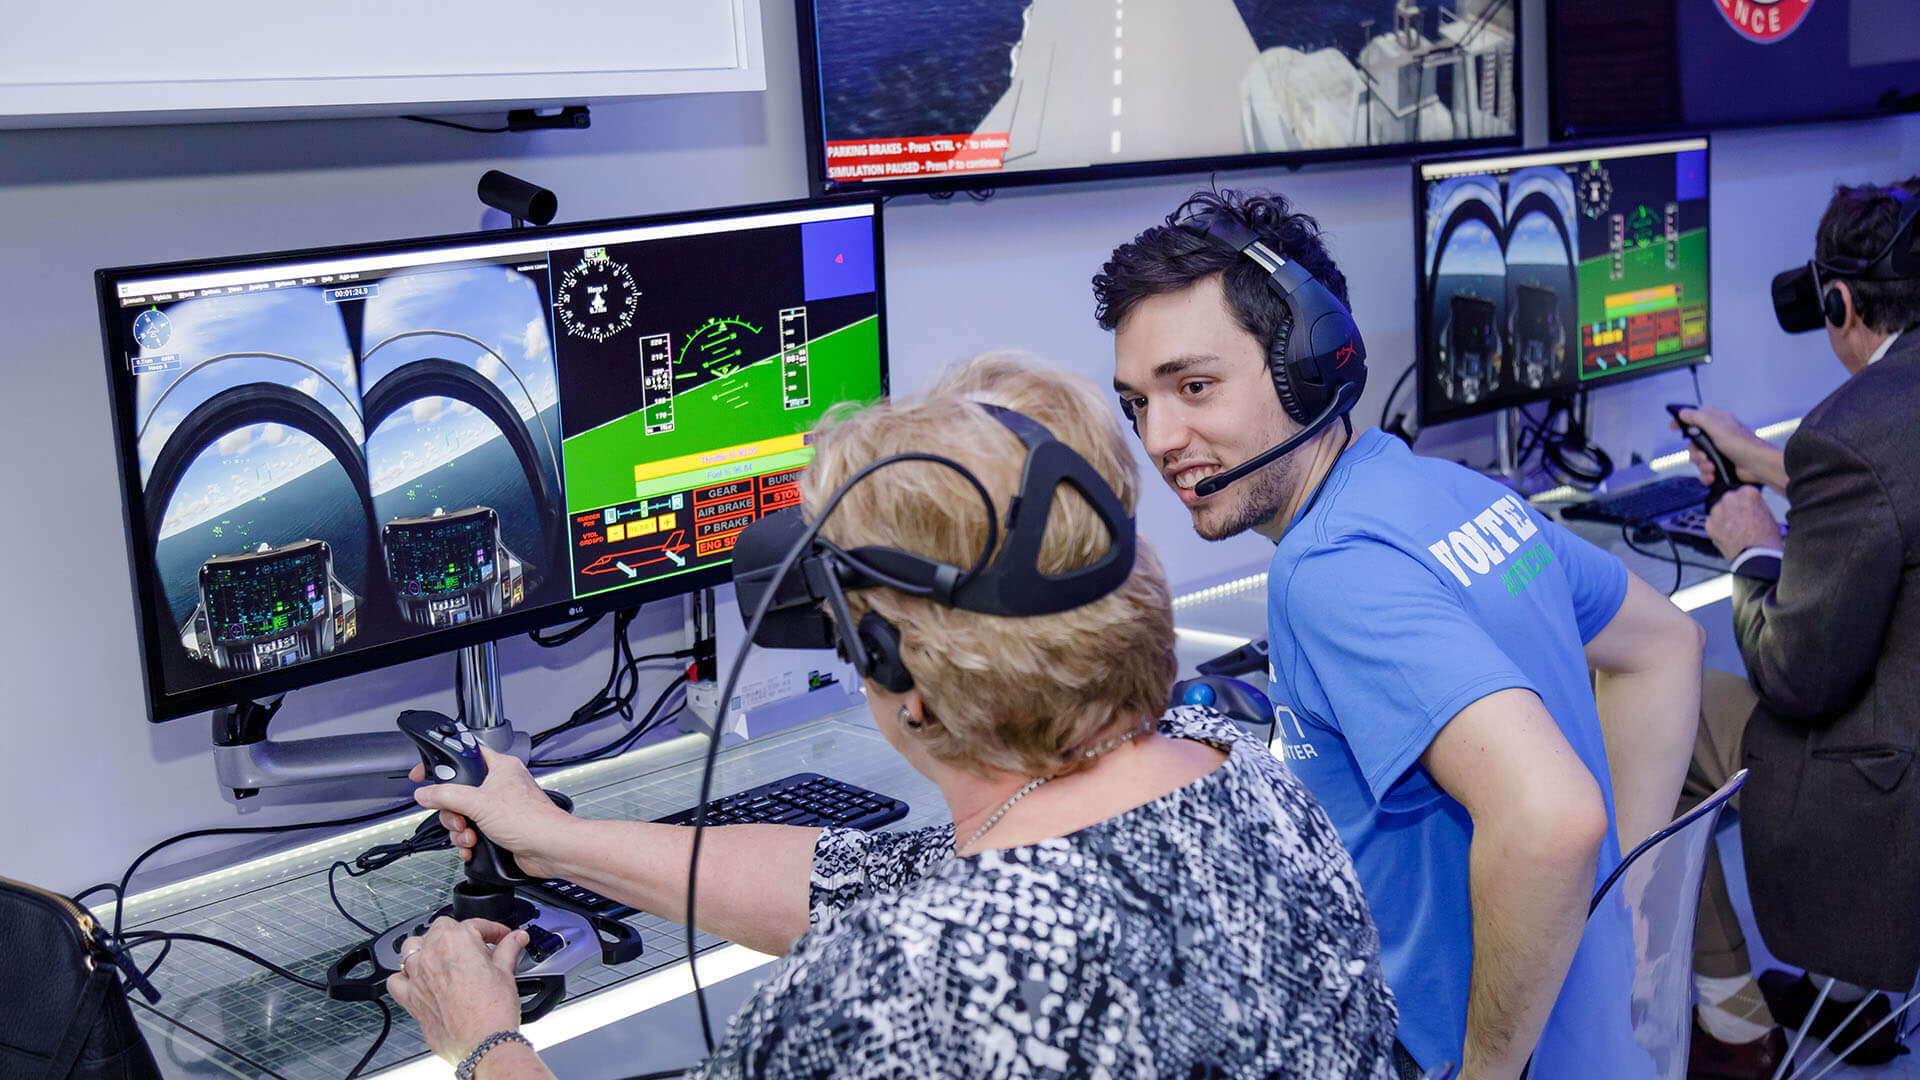 Adult volunteer in the Flight Lab exhibit assisting guest.